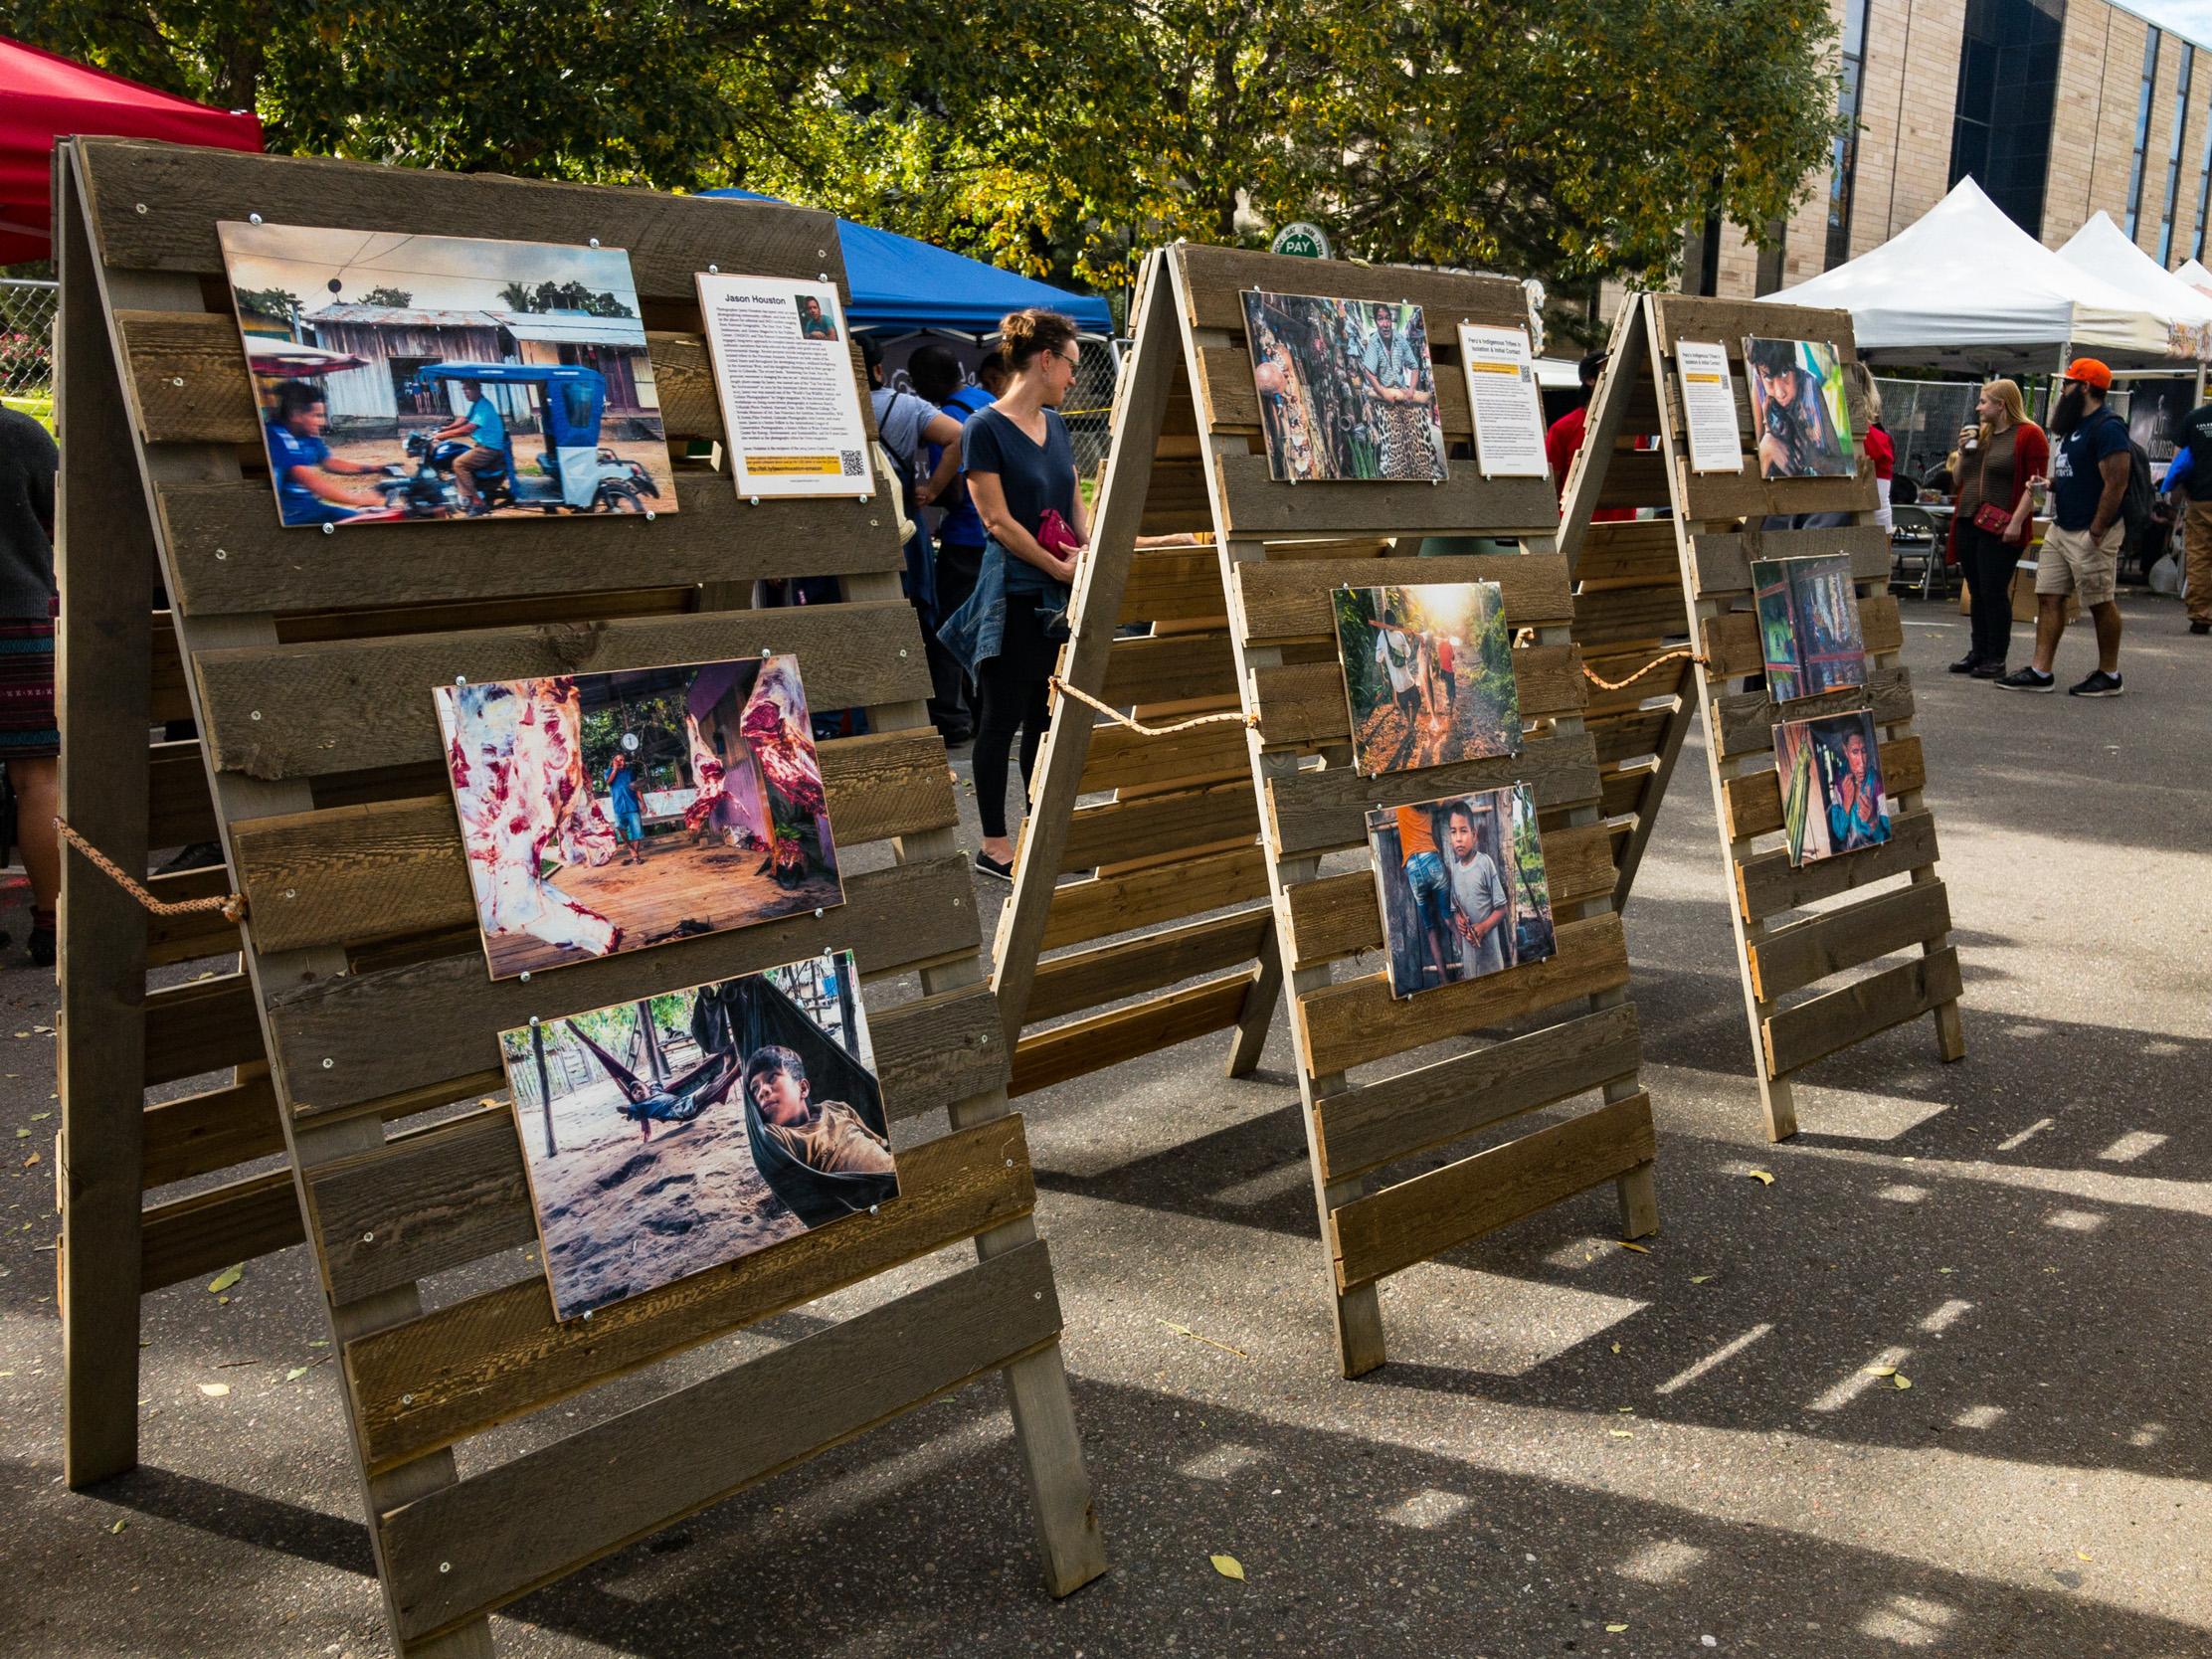 A pop-up exhibition at Boulder's Adventure Film Festival featuring work for Upper Amazon Conservancy on indigenous rights and protected areas in the Amazon.